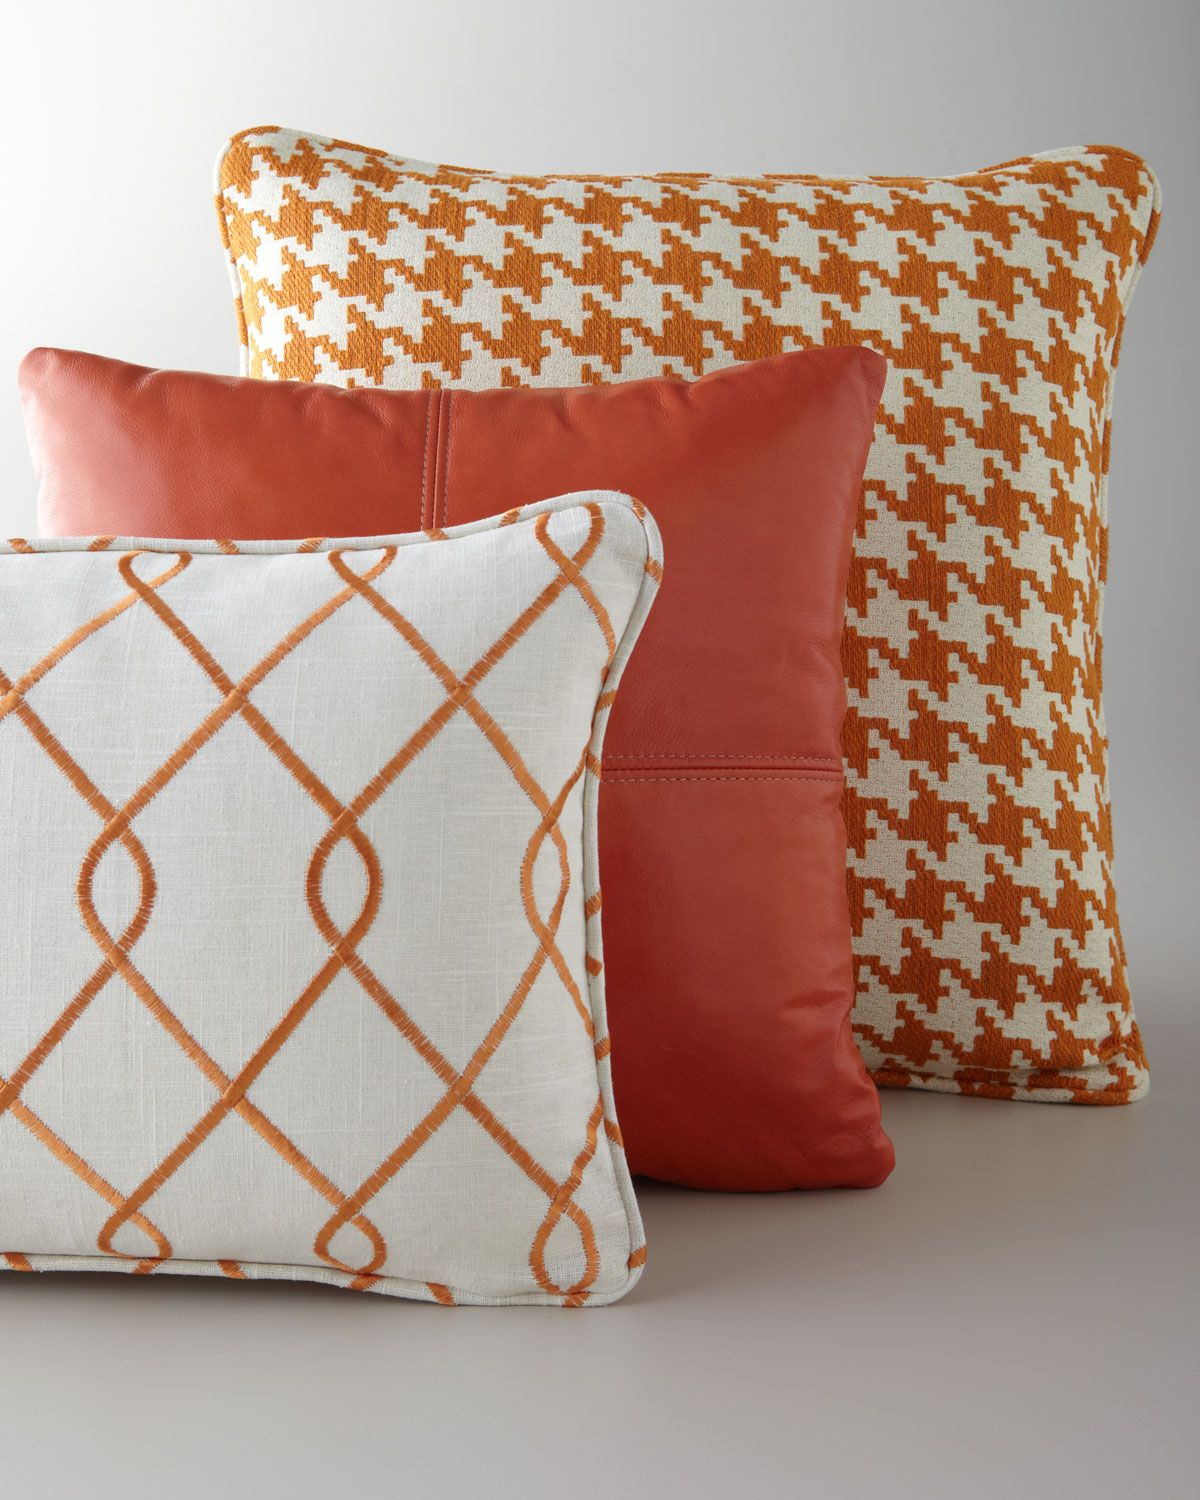 Pillows in Shades of Orange - Horchow